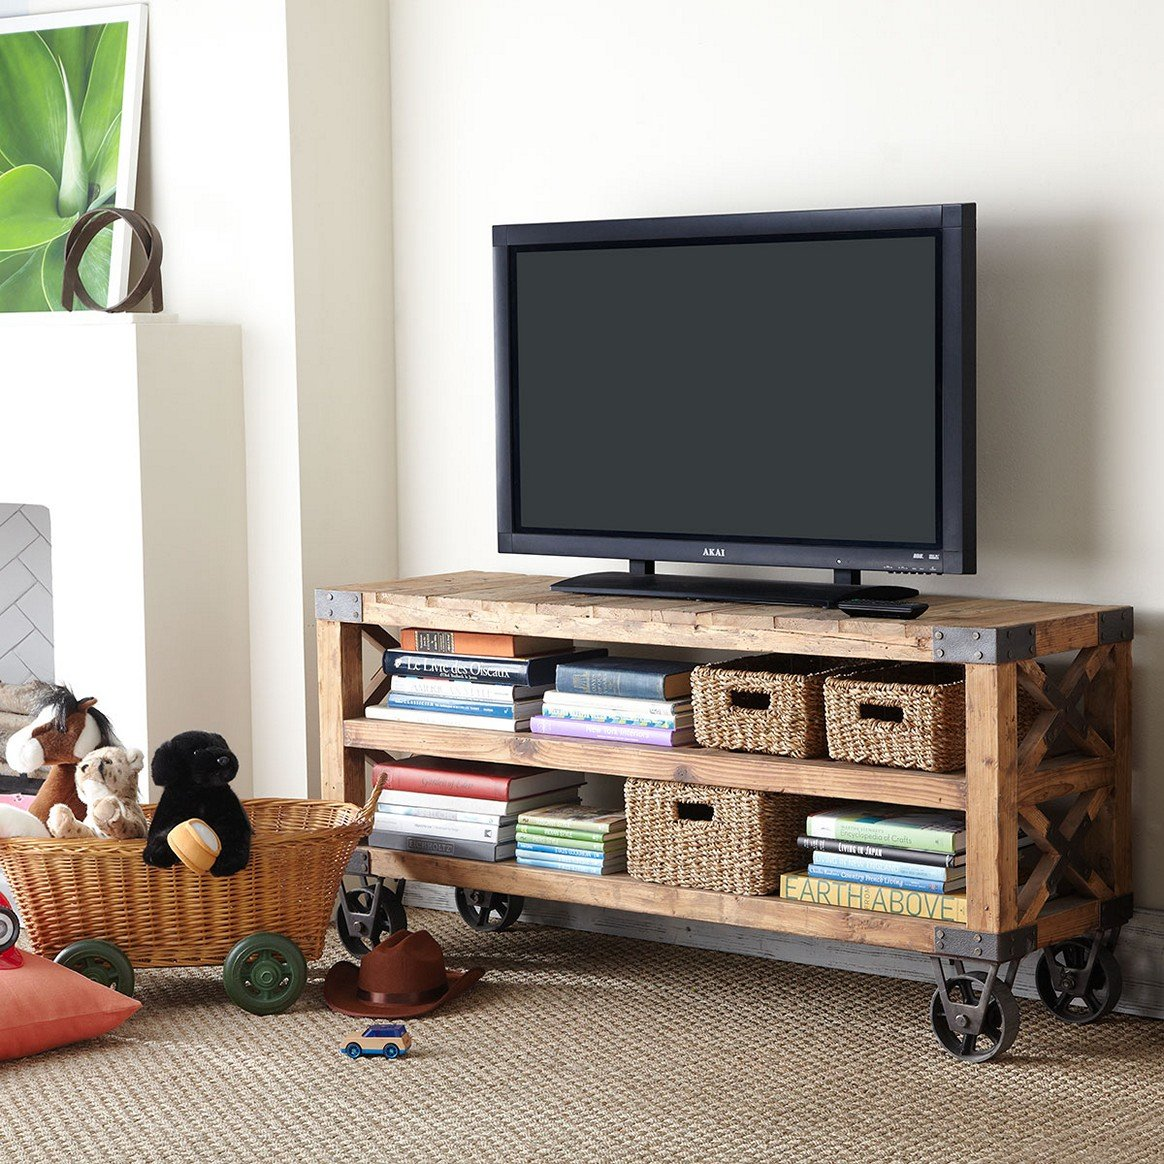 living room tv stand ideas white leather sectional 21 diy for your weekend home project moveable with wheels